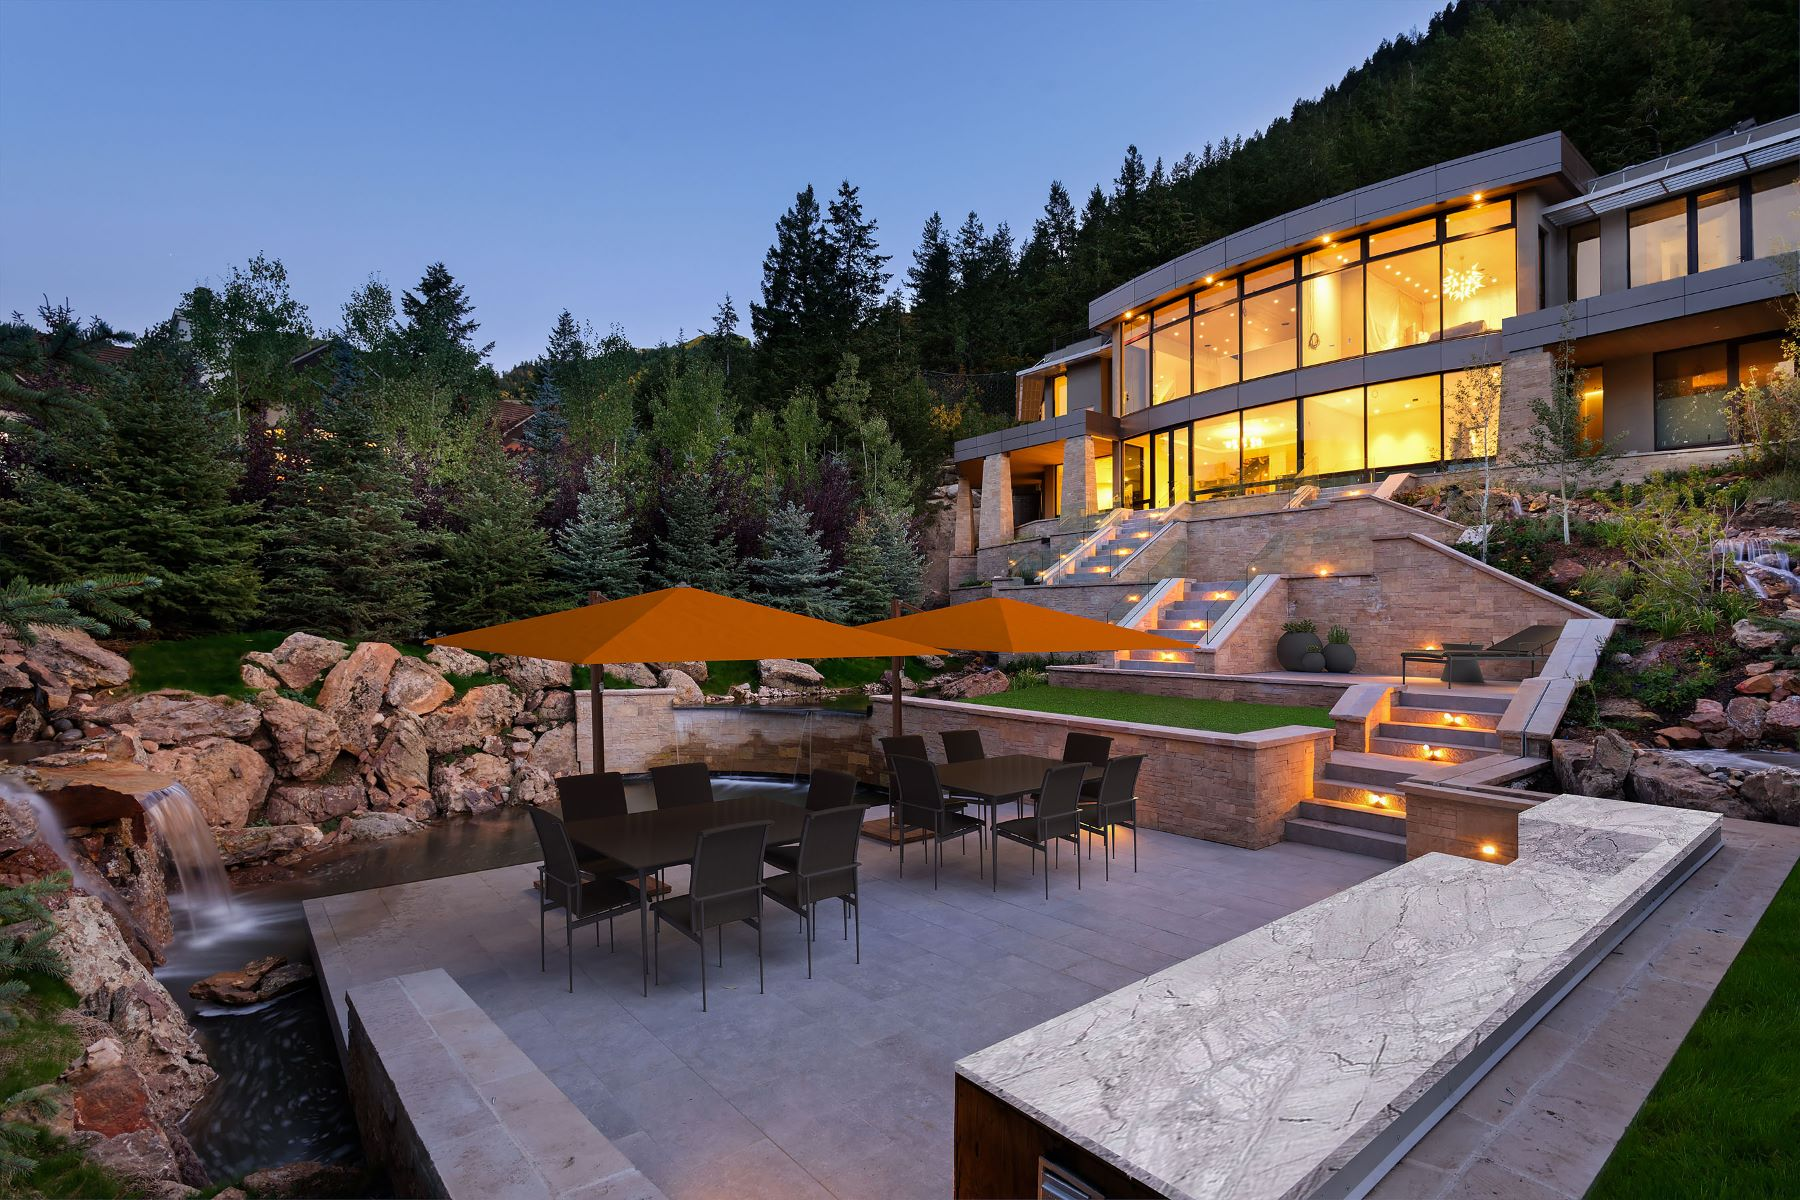 Single Family Home for Active at Downtown Aspen Masterpiece 19 Little Cloud Trail Aspen, Colorado 81611 United States